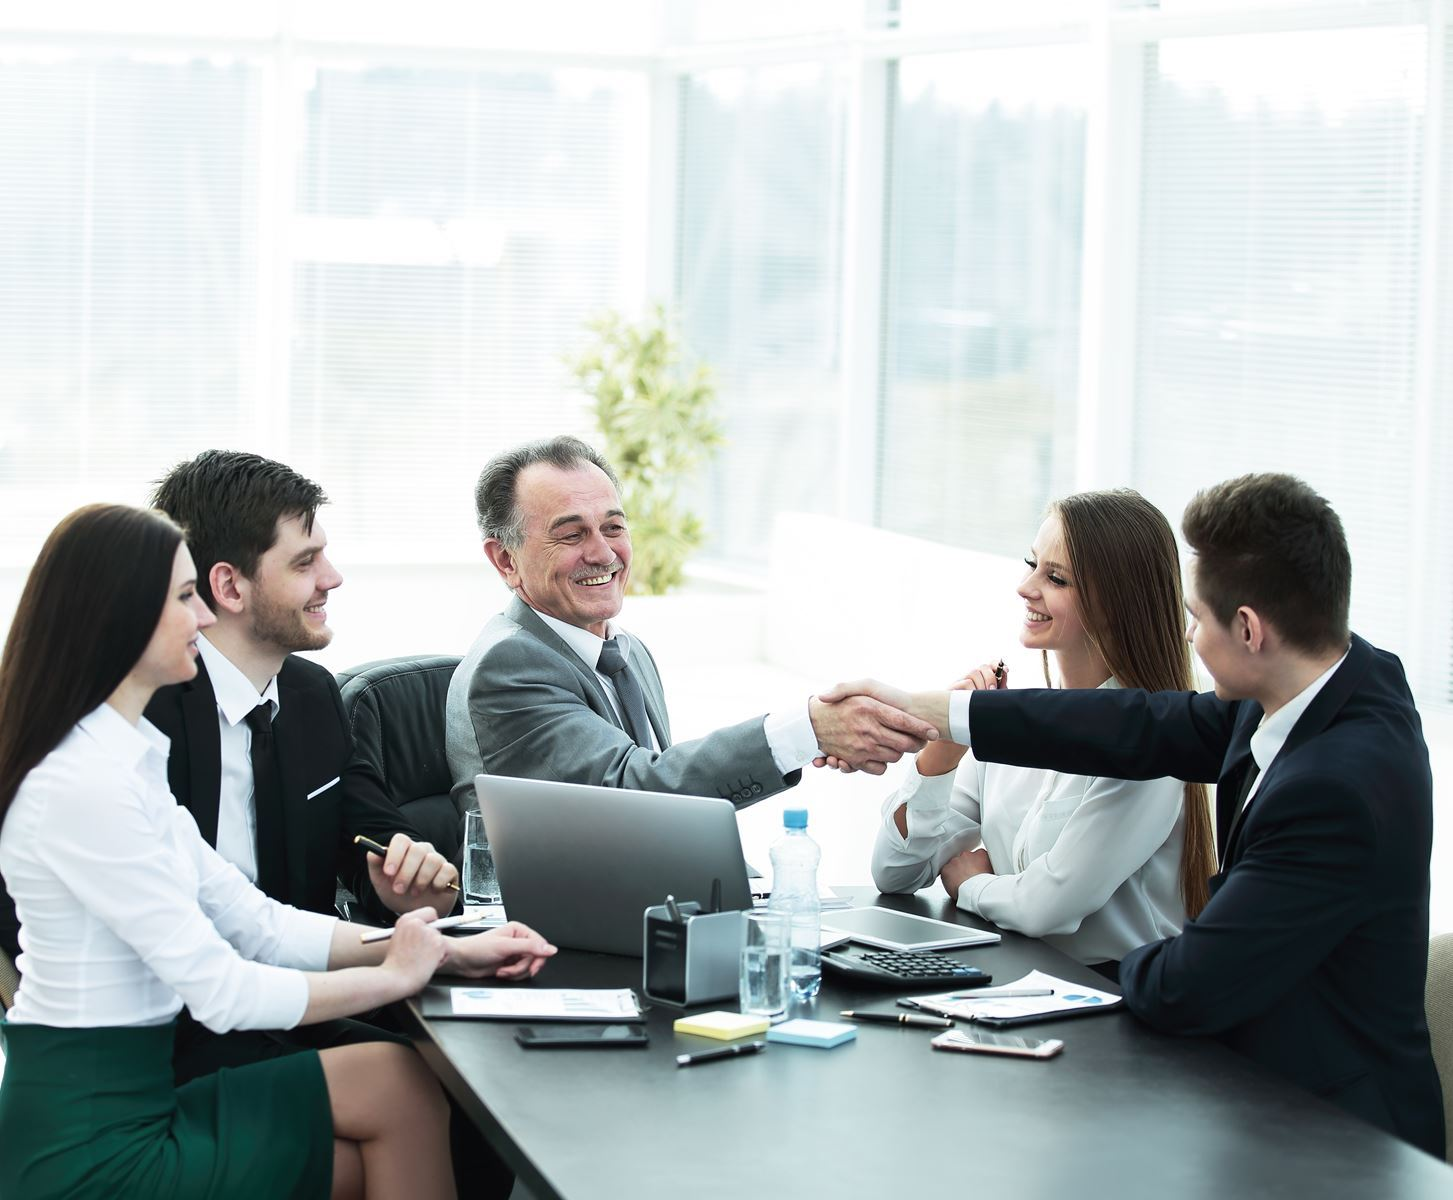 Group of people in a meeting sitting at a table. 2 men are shaking hands